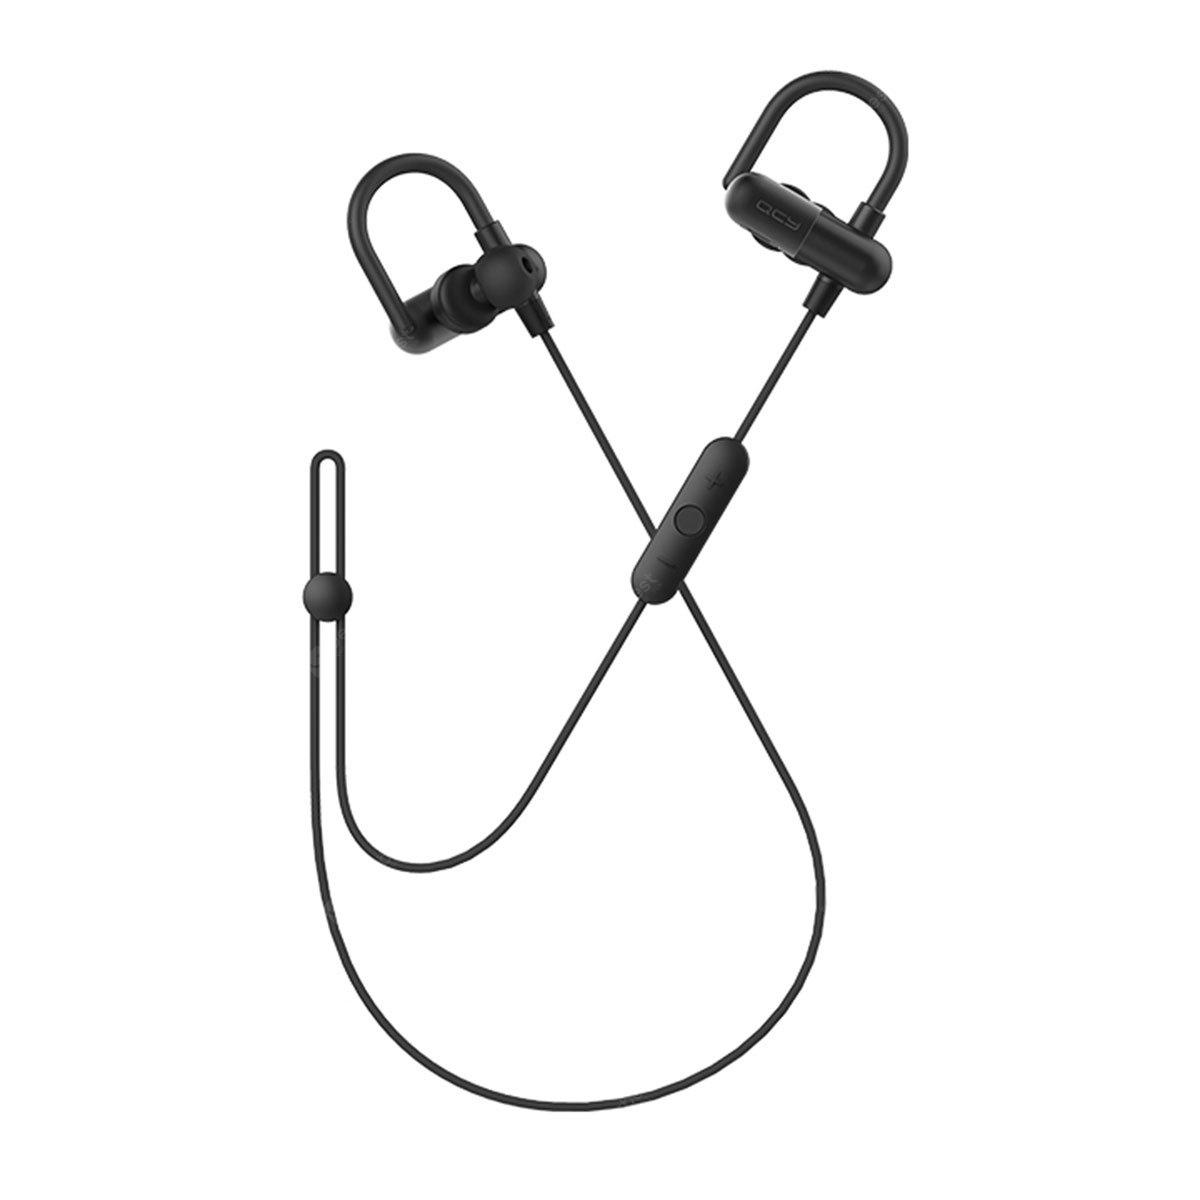 QCY QY11 Wireless sport earphone